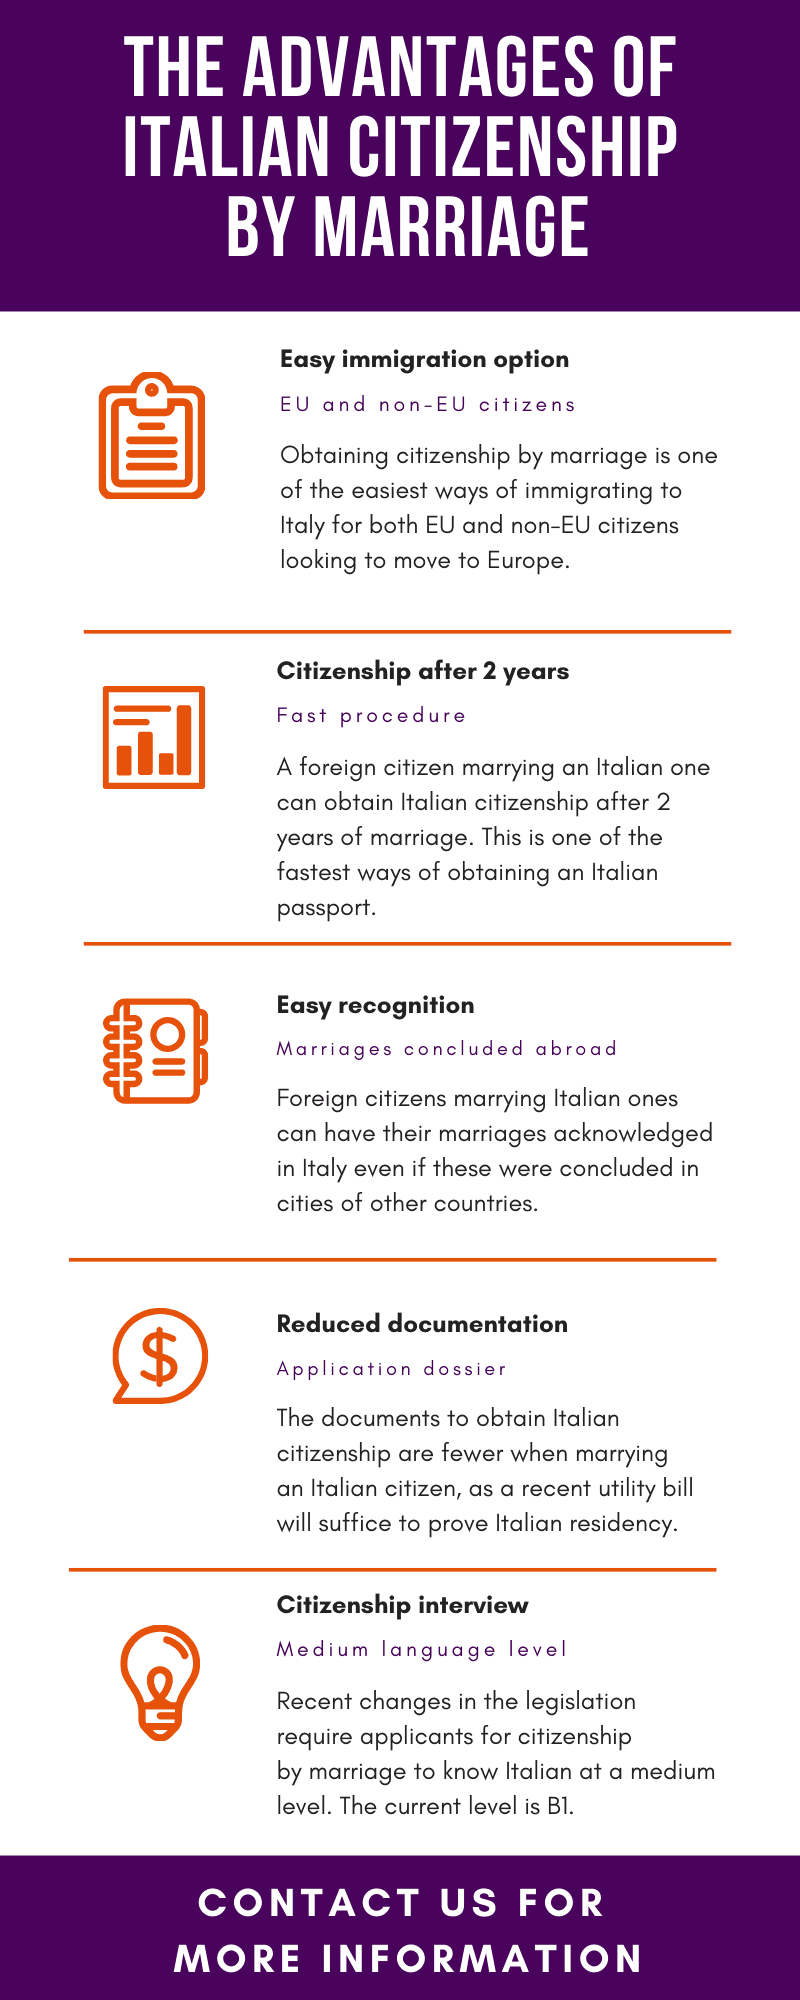 The advantages of Italian citizenship by marriage